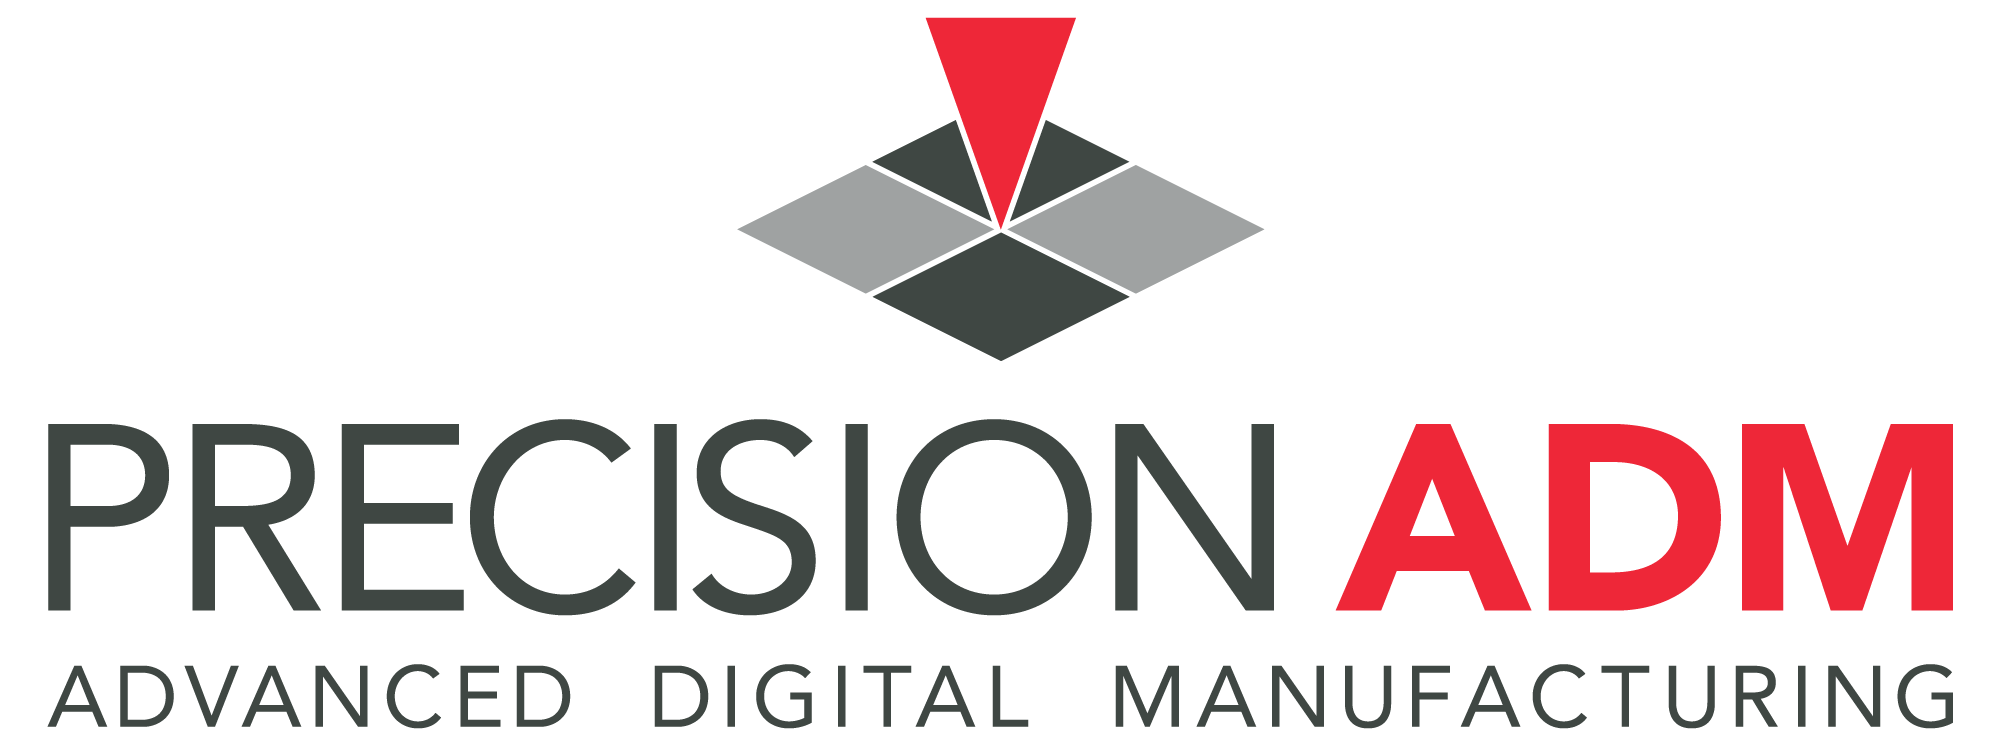 Precision-ADM-logo---Full-Colour-(large).png